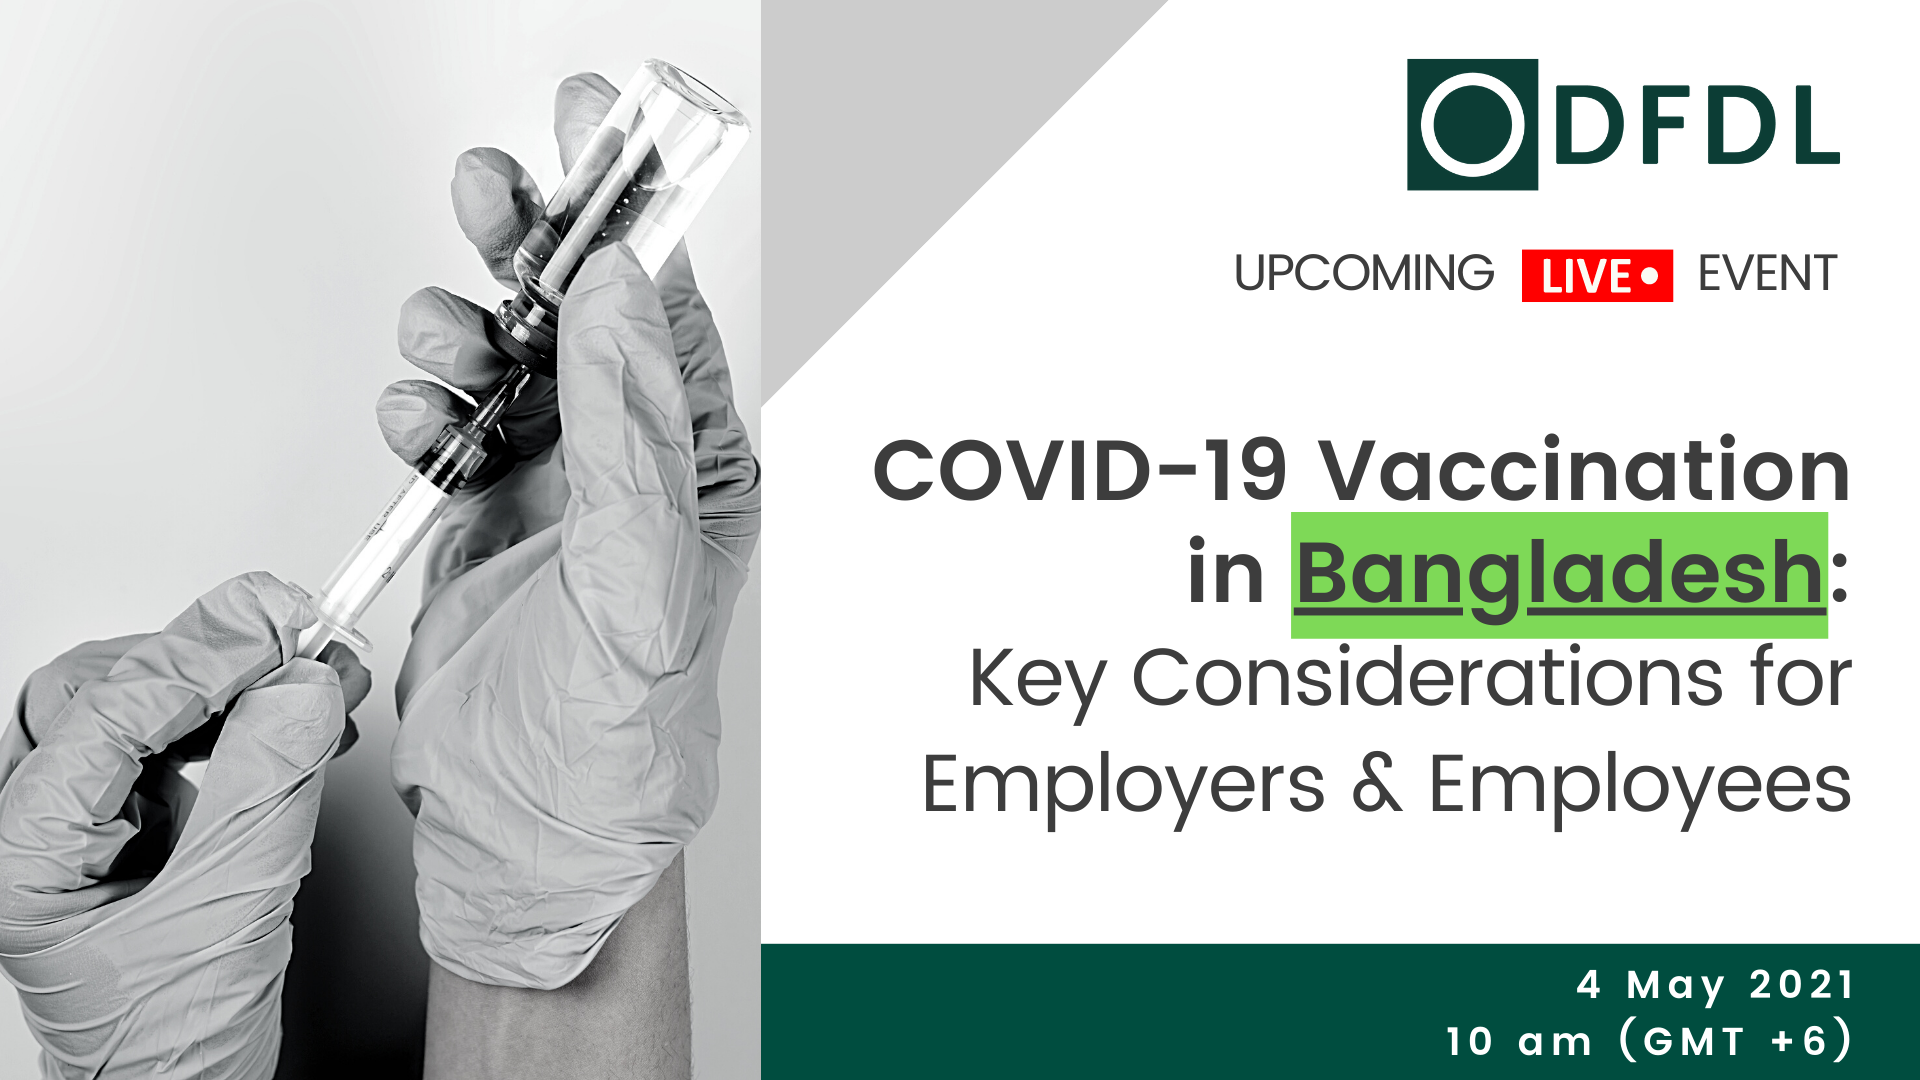 COVID-19 Vaccination in Bangladesh: Key Considerations for Employers & Employees